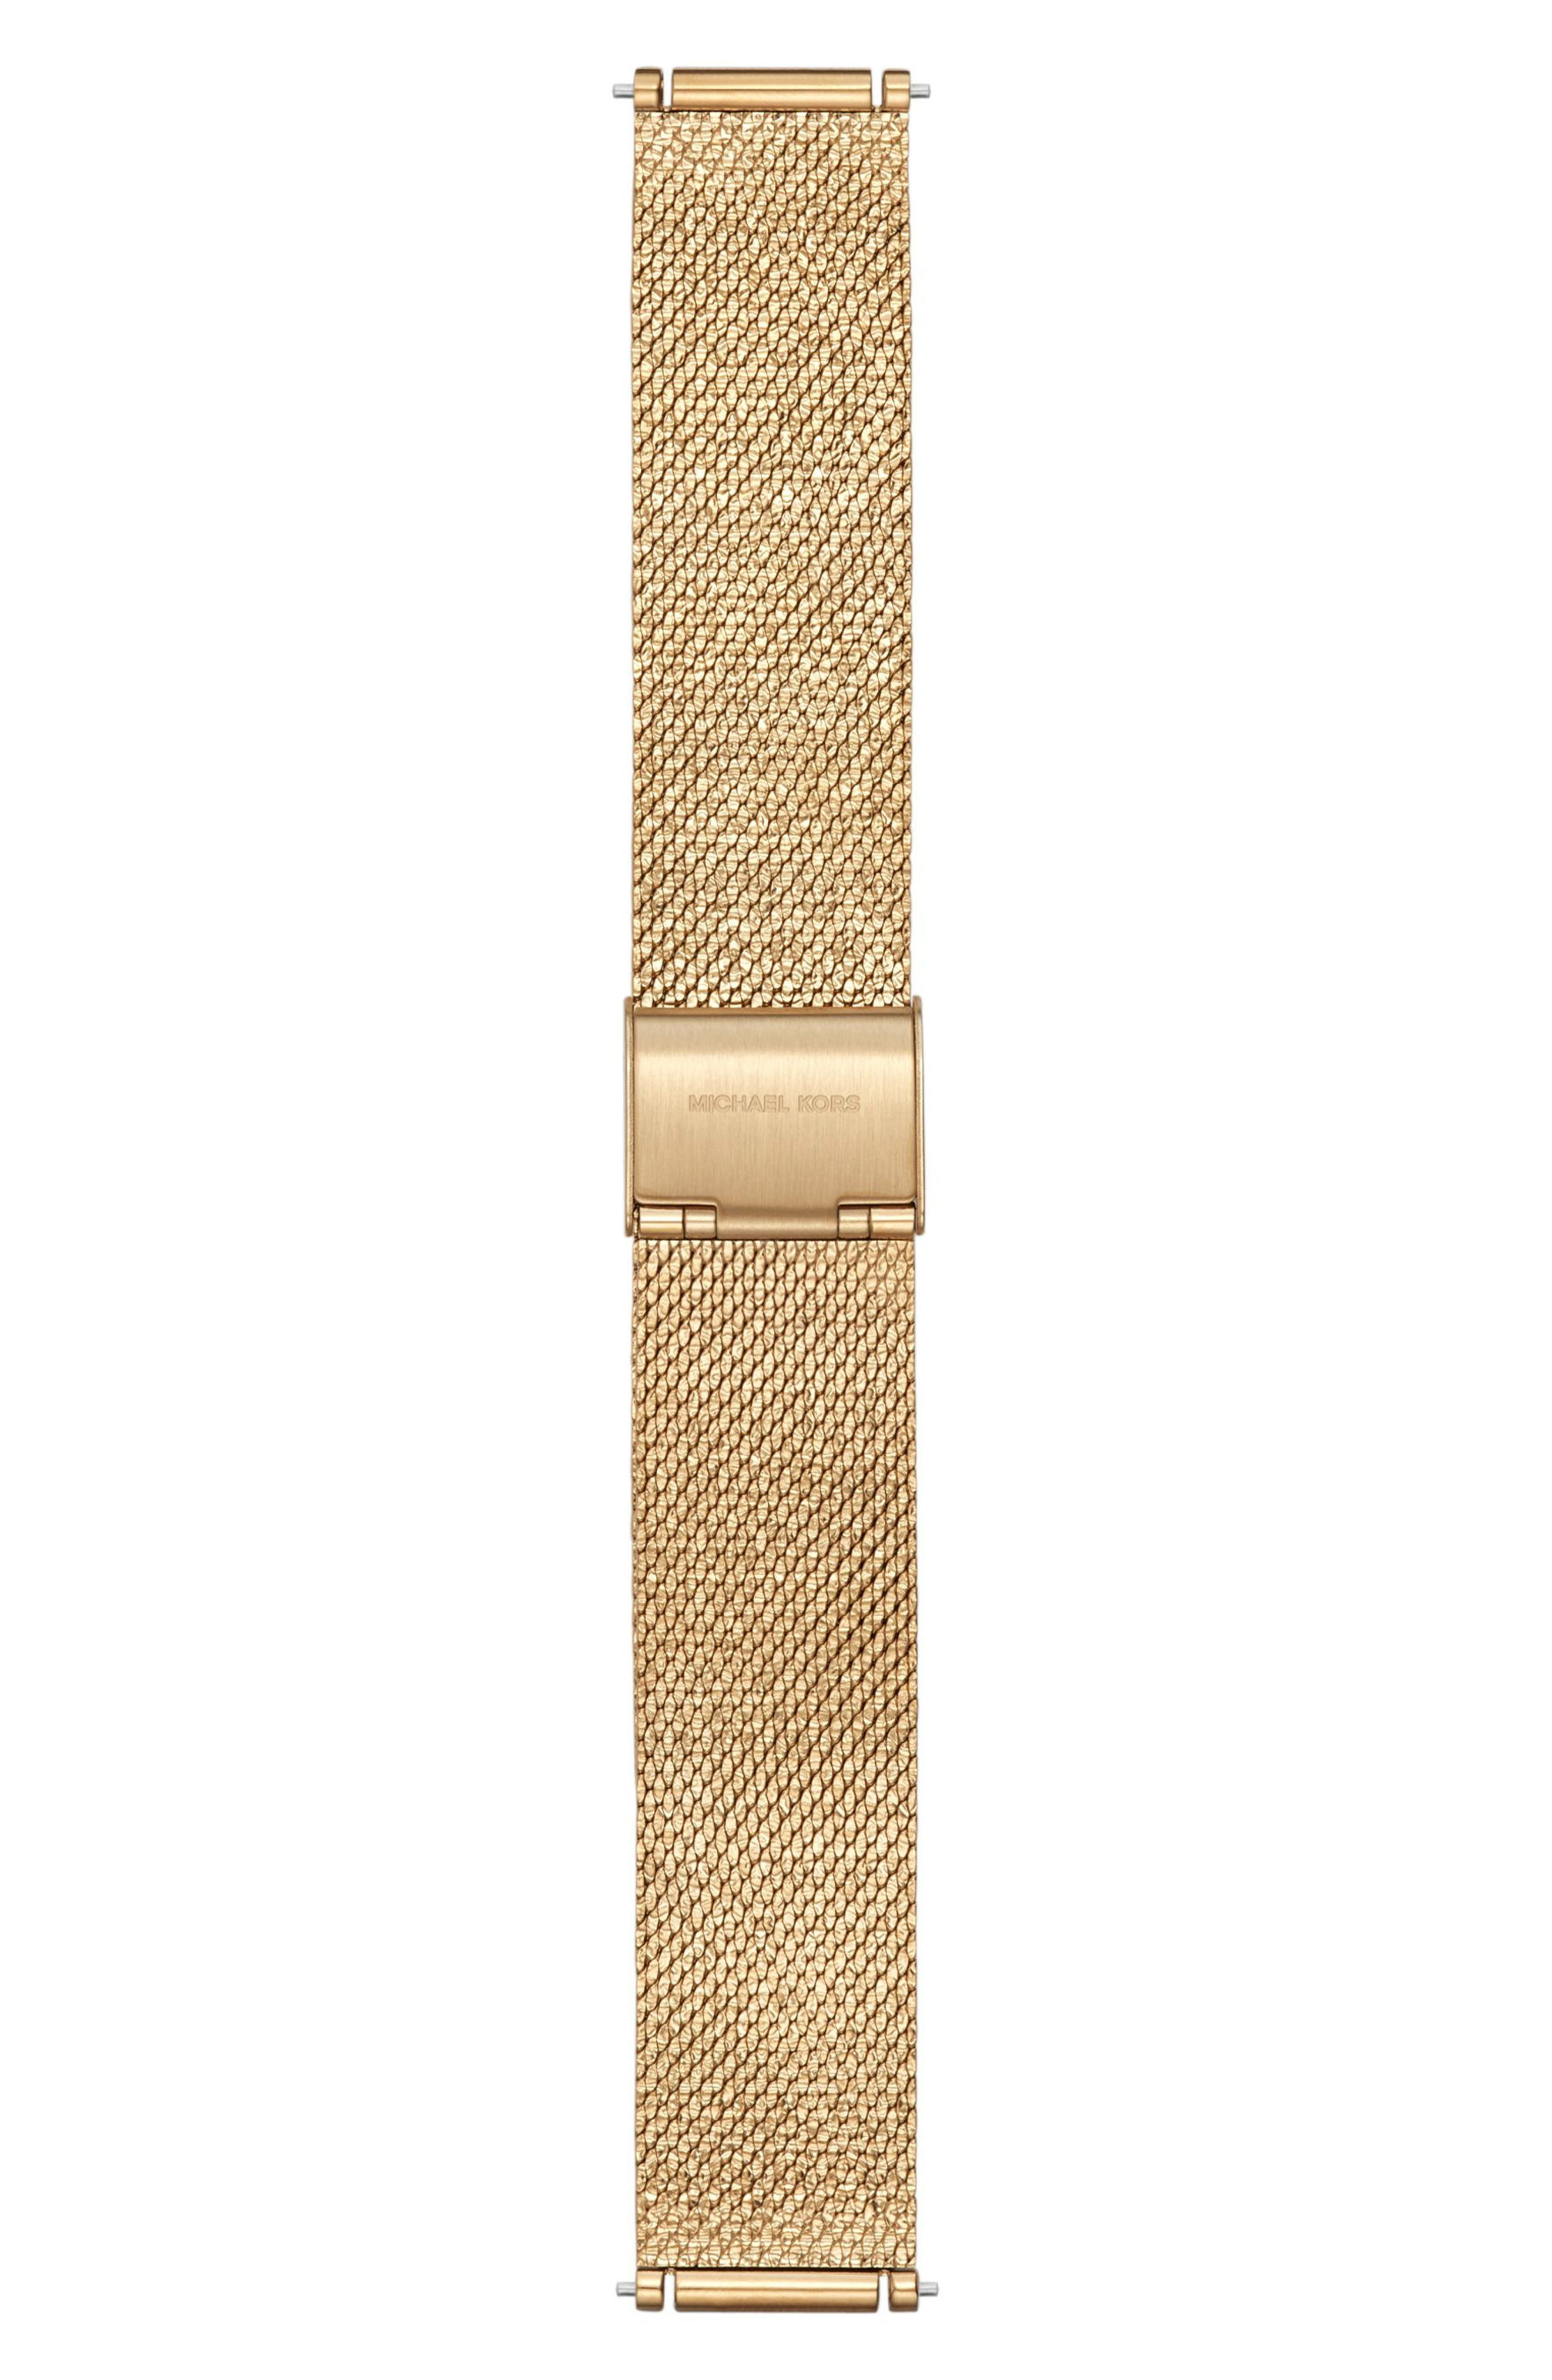 MICHAEL KORS ACCESS Sofie 18Mm Mesh Watch Strap in Gold